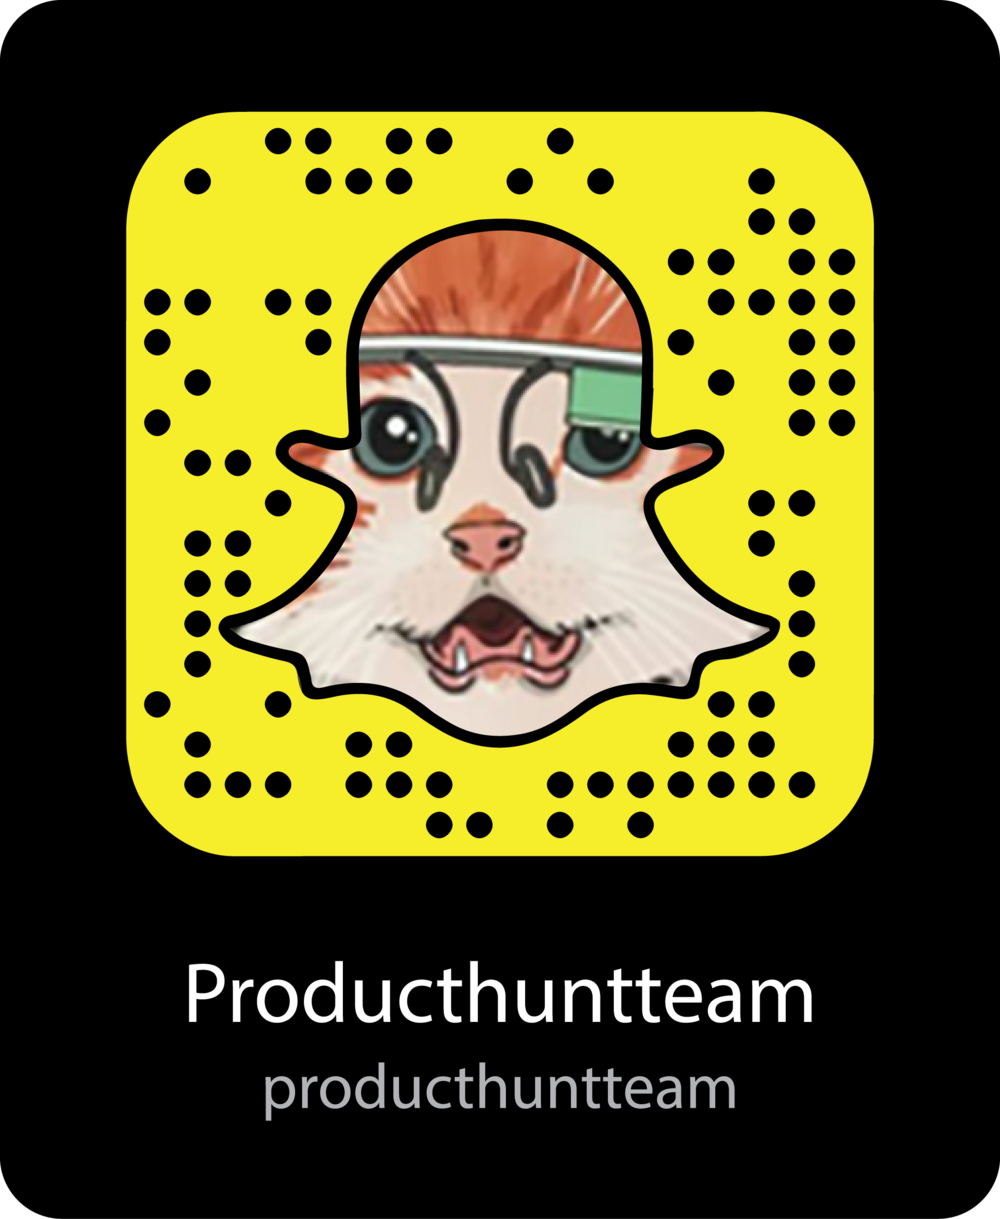 producthuntteam-Brands-snapchat-snapcode.png